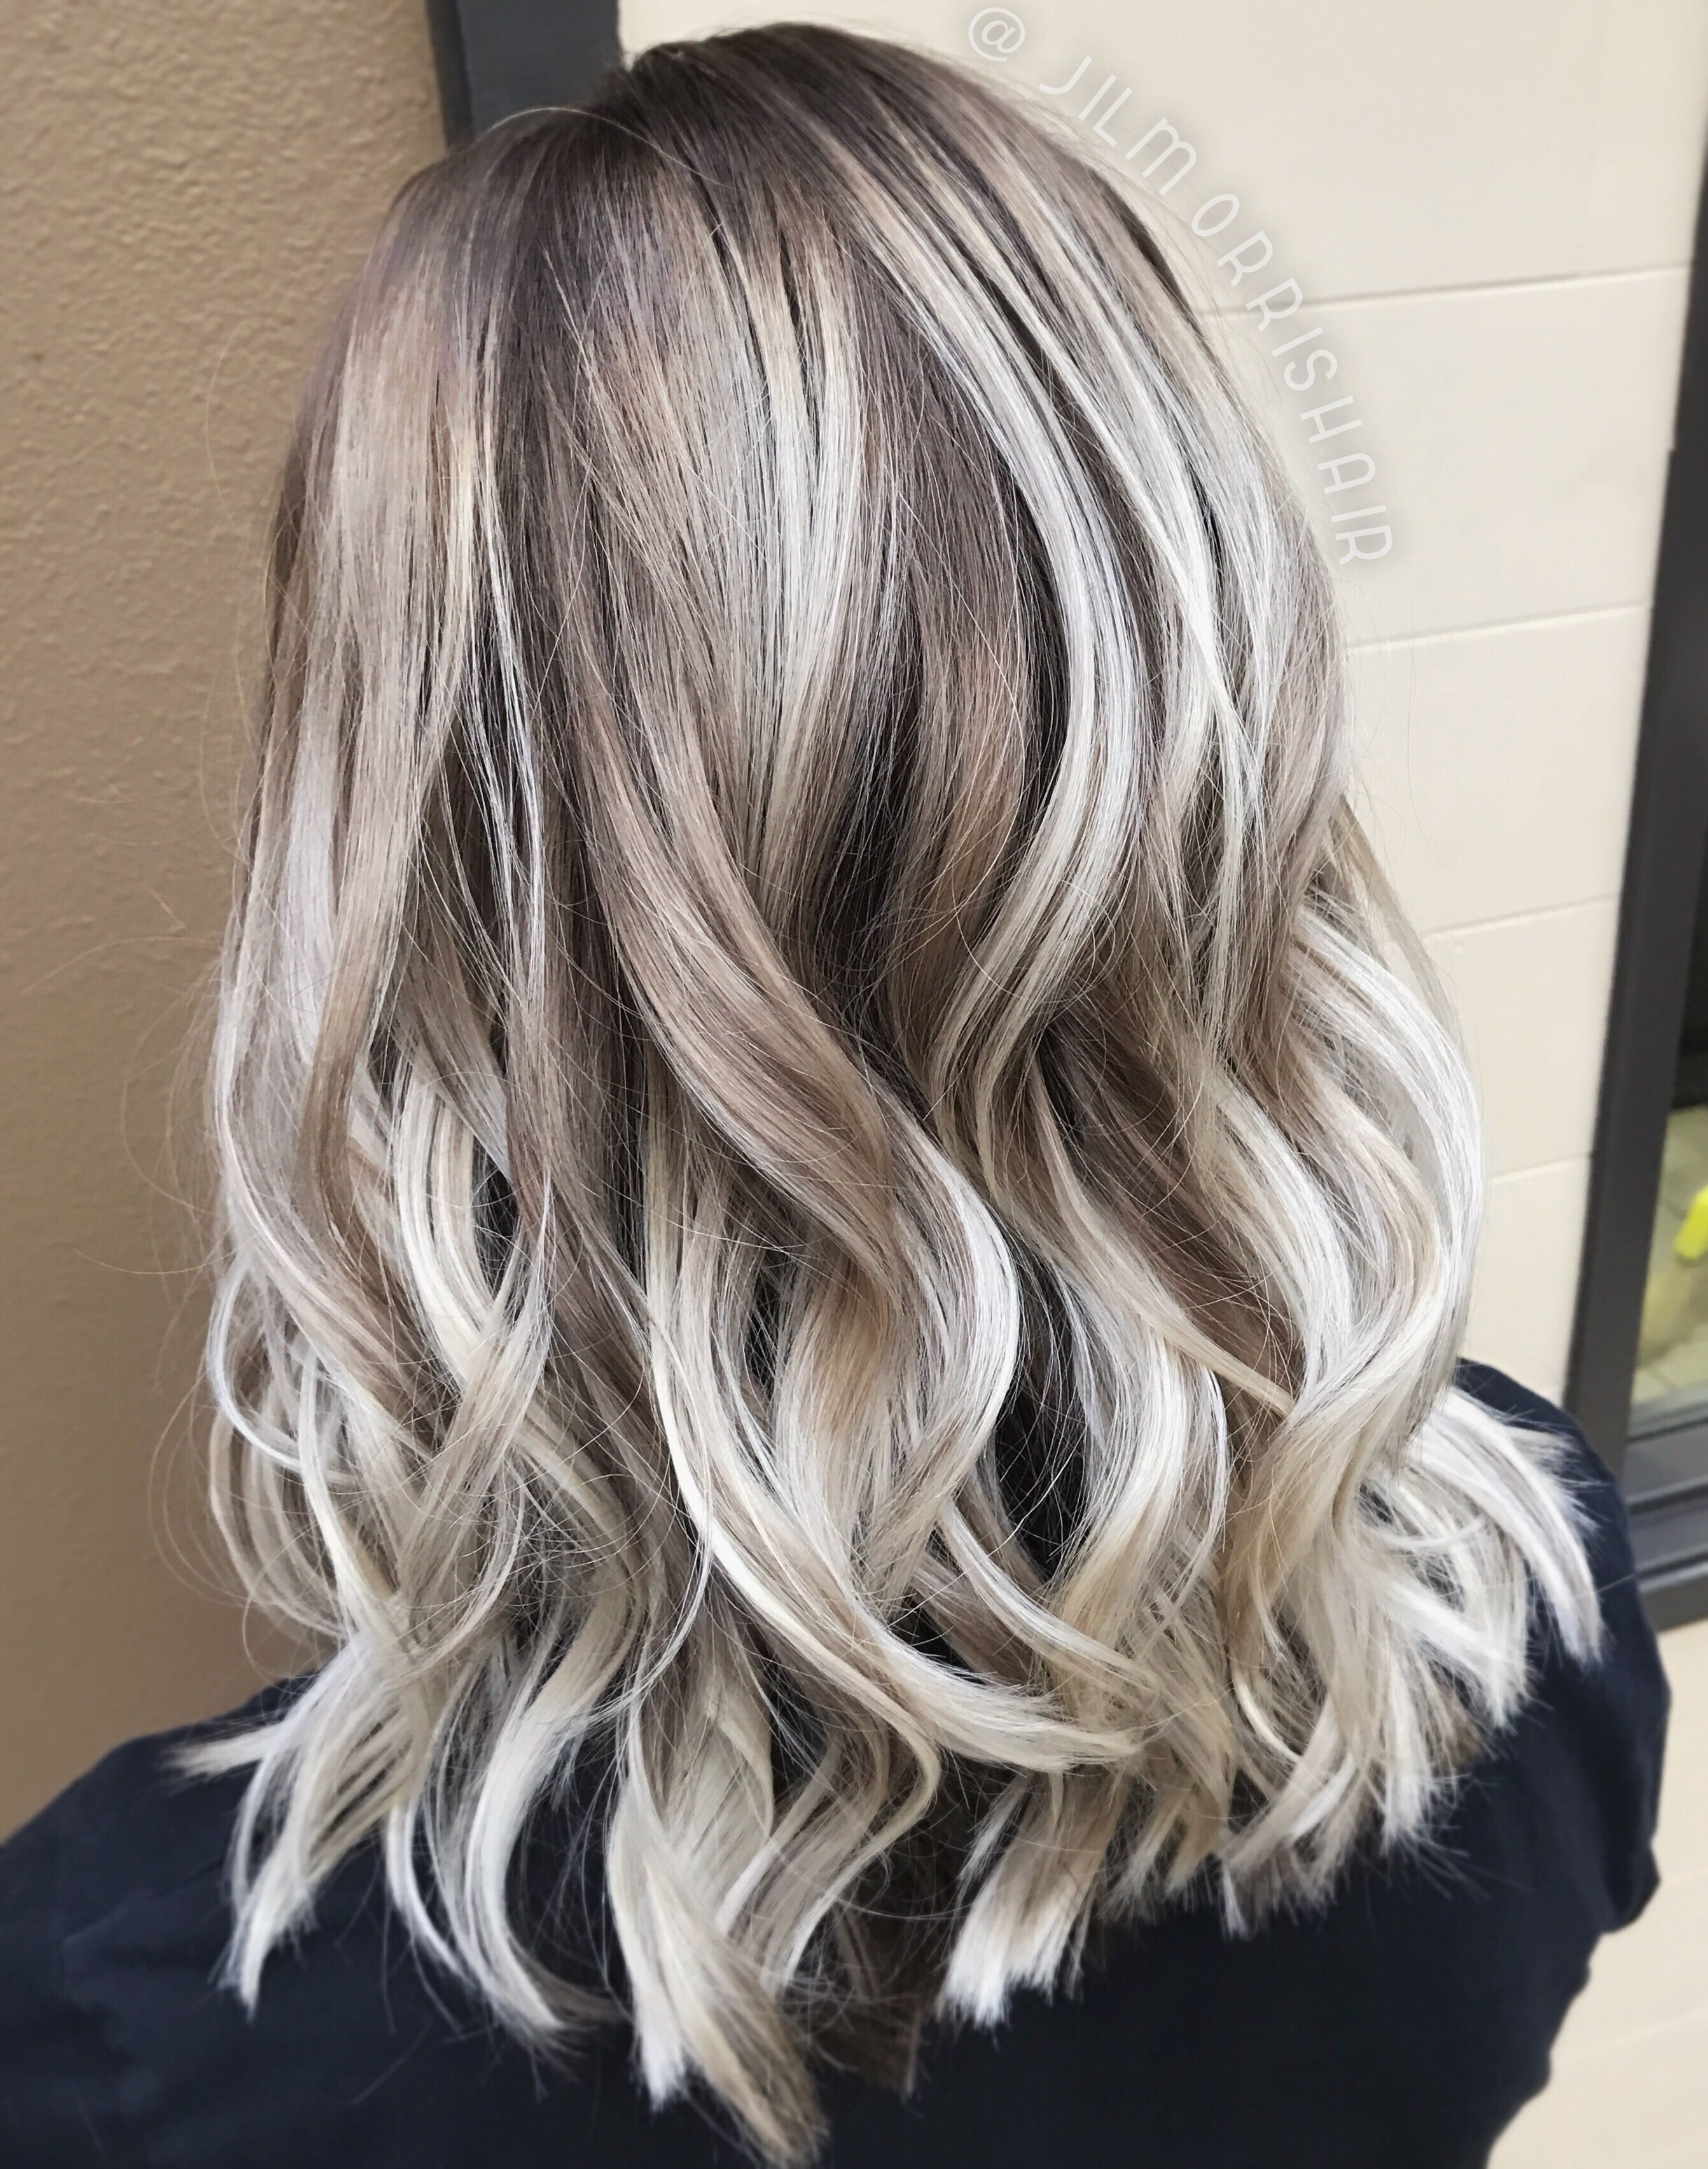 Cool icy ashy blonde balayage highlights shadow root waves and white ash blonde balayage shadow root curls in a textured lob holiday hair pmusecretfo Gallery